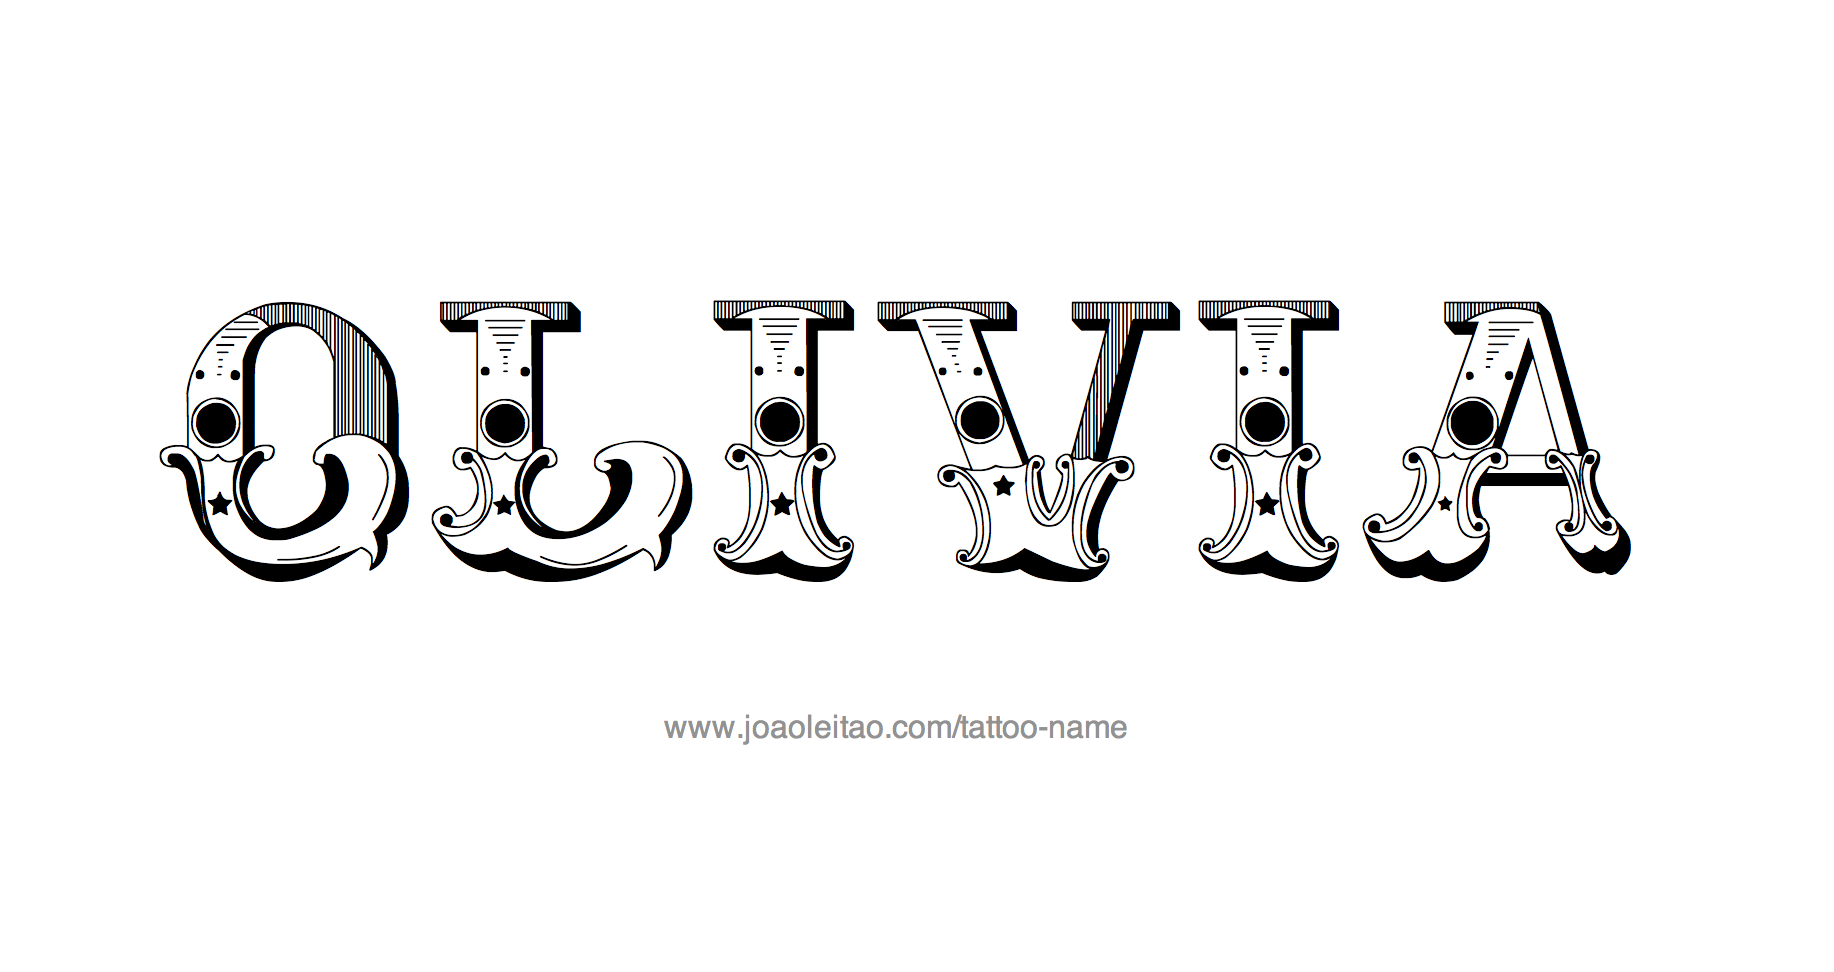 Tattoo Design Name Olivia Name tattoo designs, Tattoo